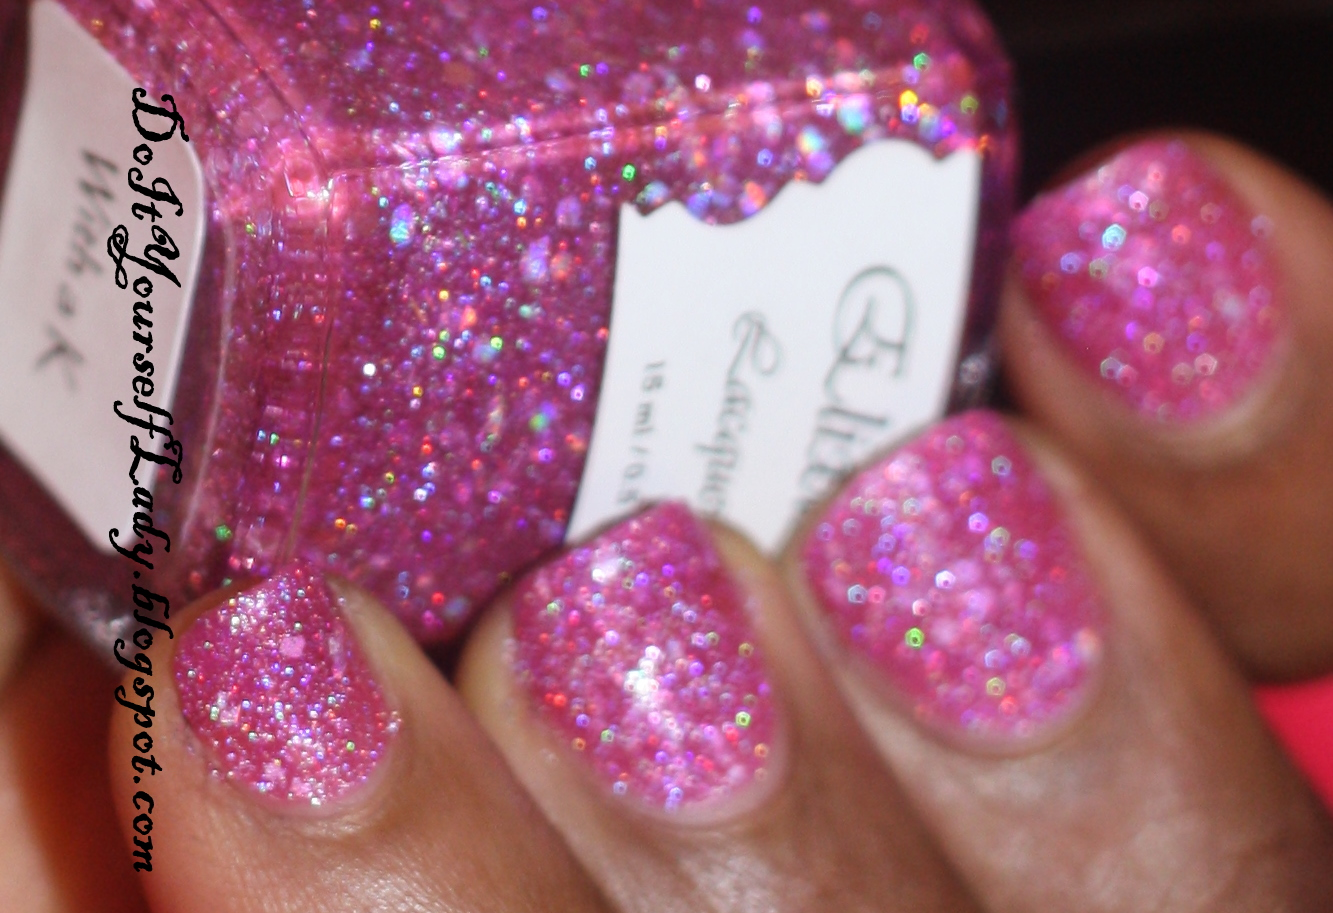 The Do It Yourself Lady: Elixir Lacquer - With a K